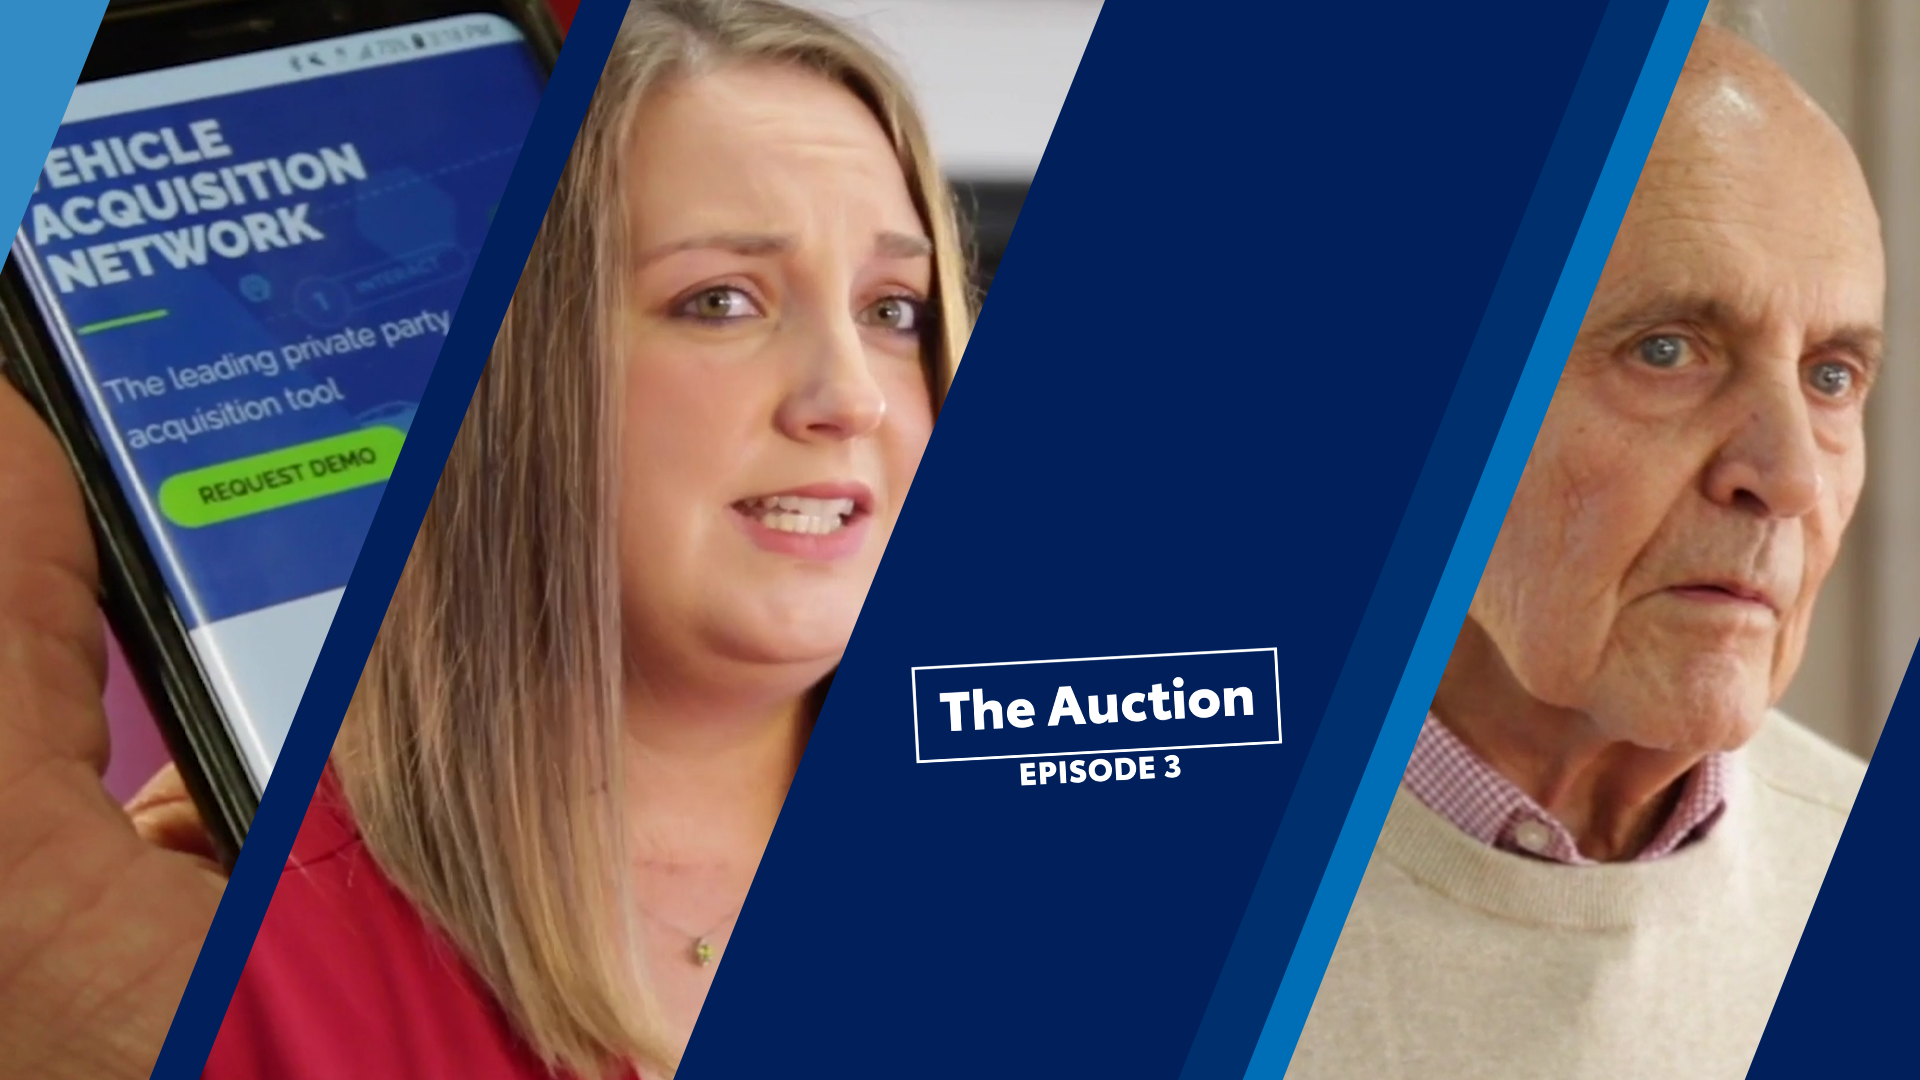 The Auction Webisode 3